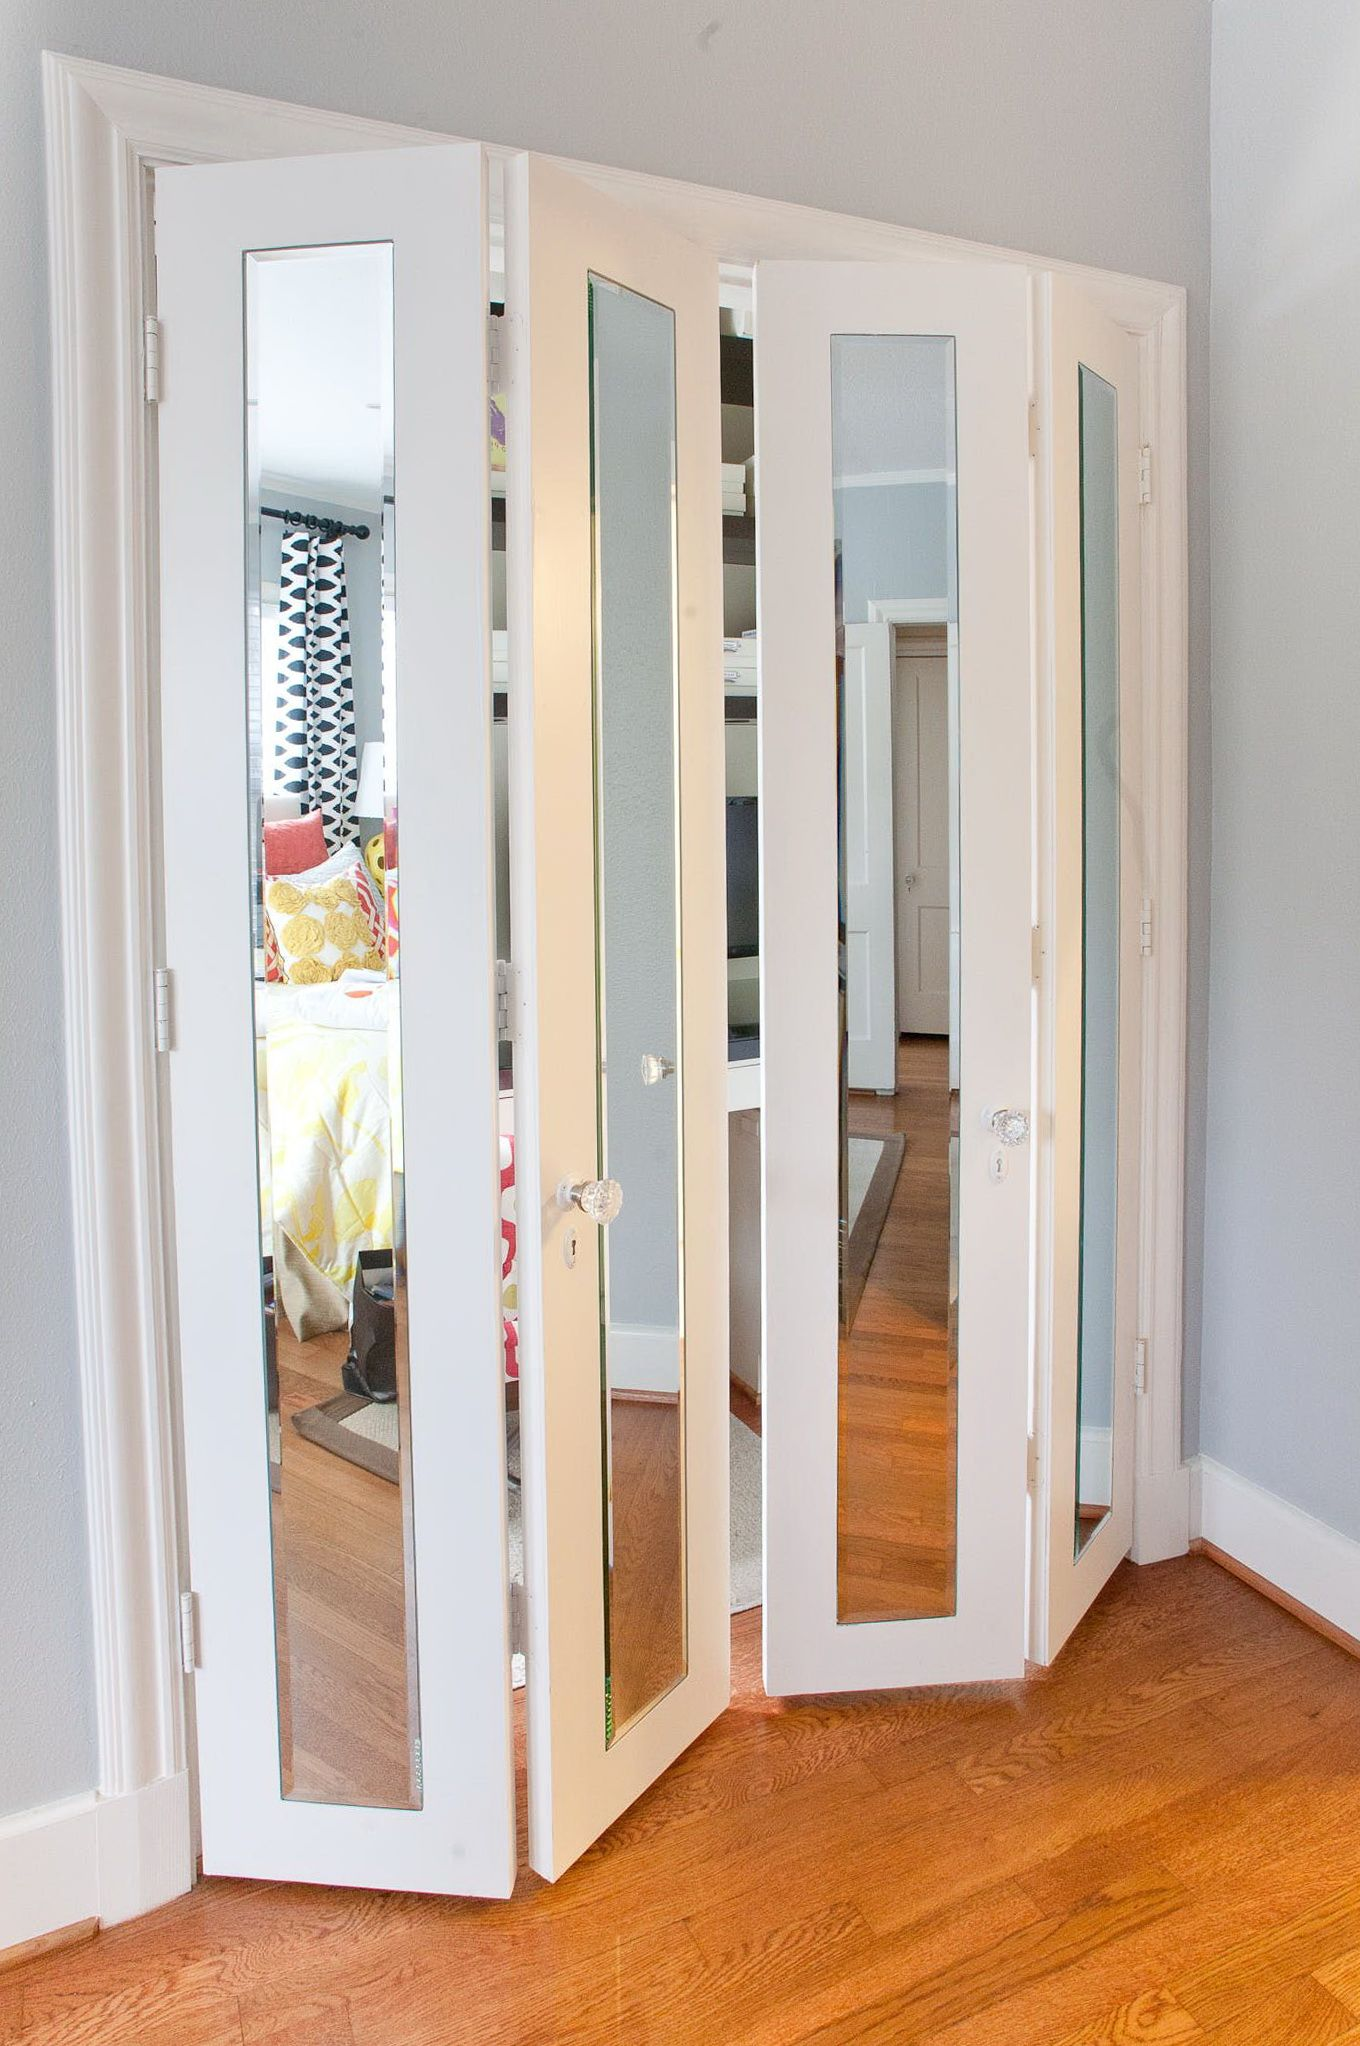 Top 13 Closet Door Ideas To Try To Make Your Bedroom Tidy And